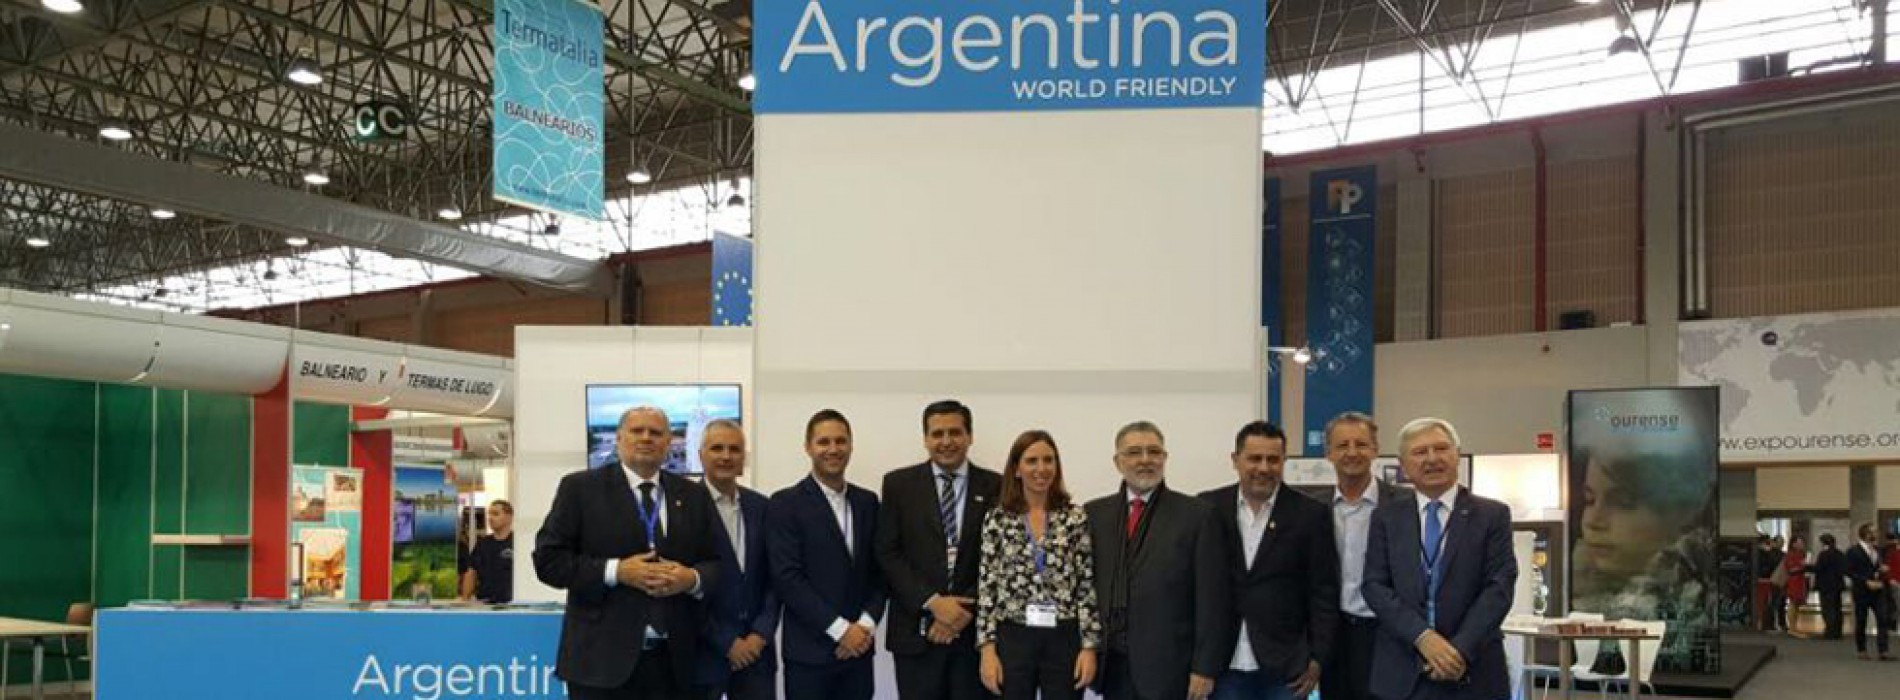 Outstanding presence of Argentina in 2017 Termatalia